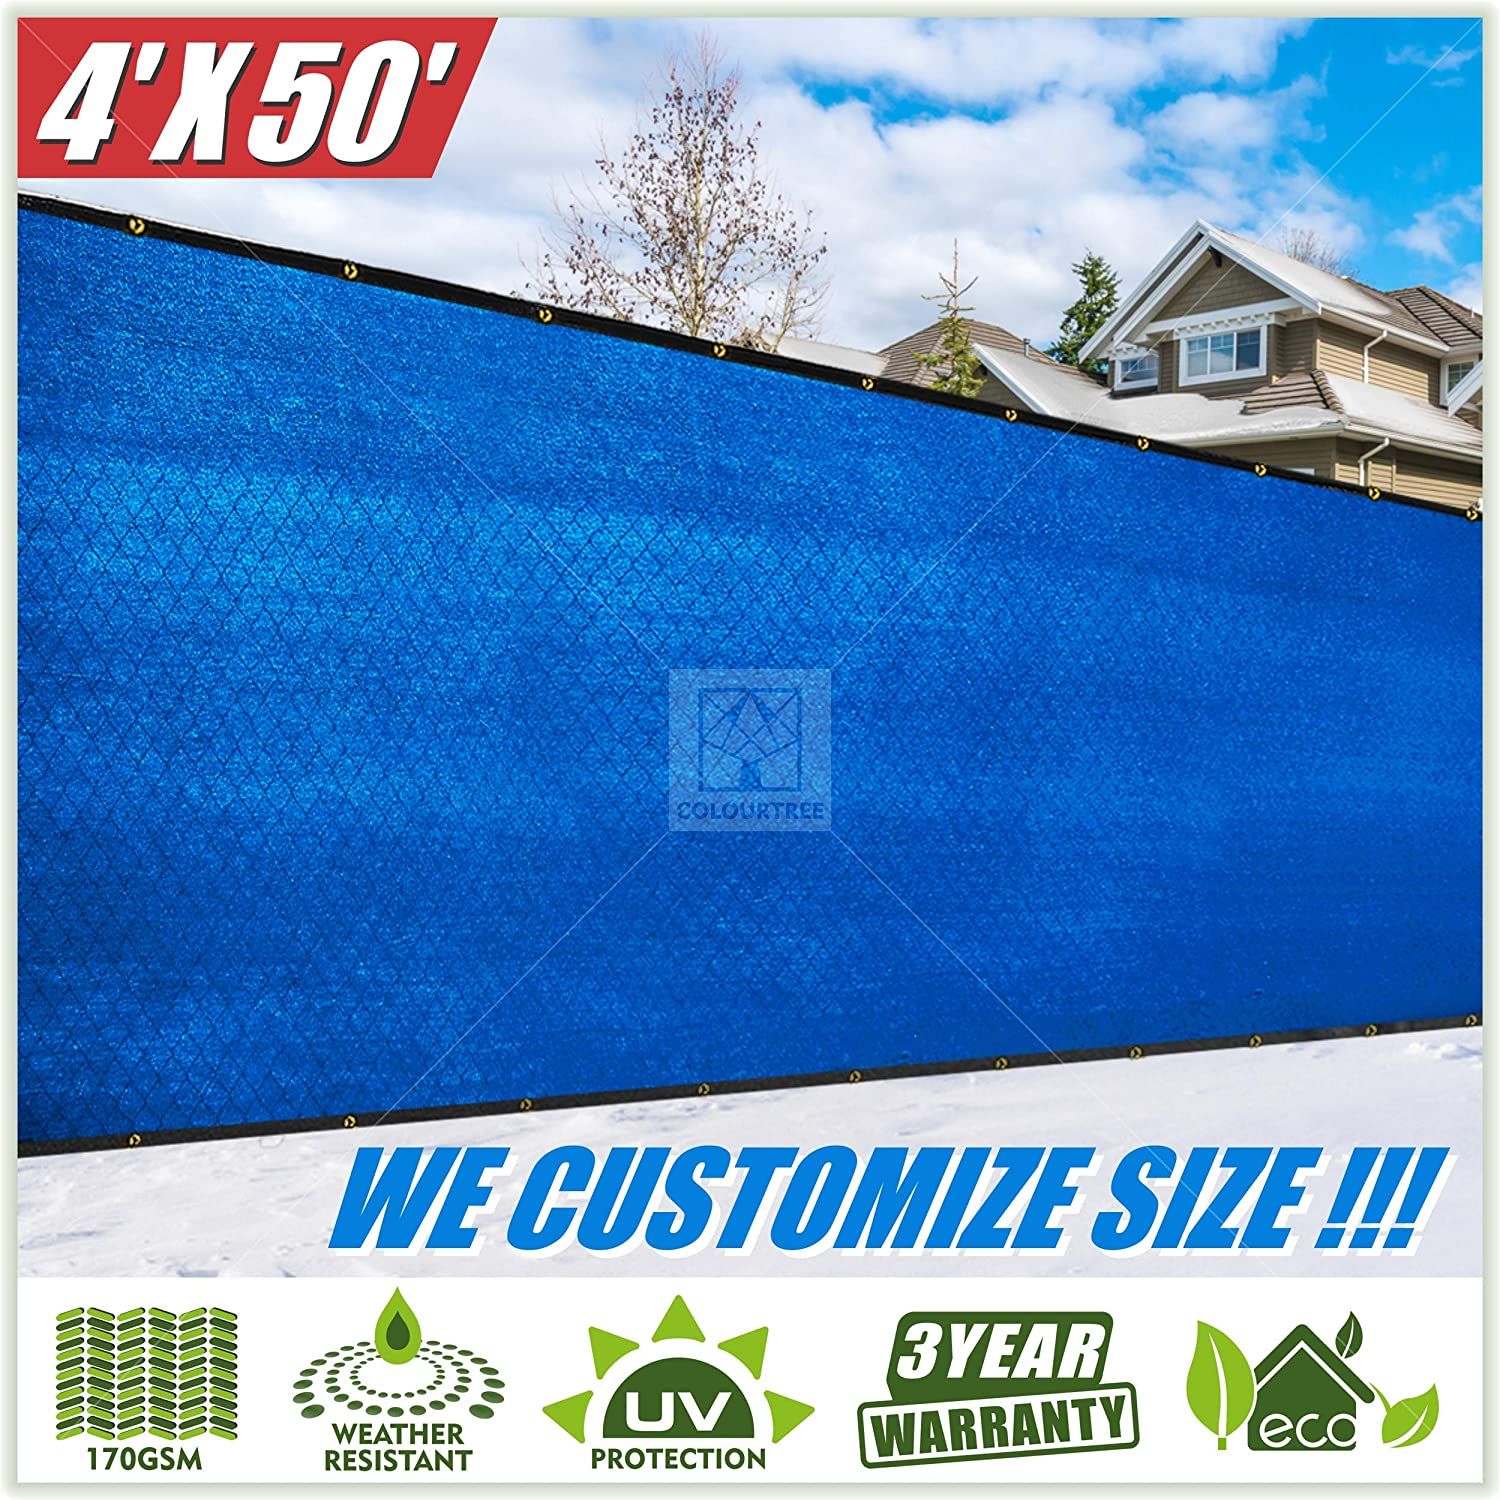 ColourTree 4 x 50 Blue Fence Privacy Screen Windscreen Cover Fabric Shade Tarp Plant Greenhouse Netting Mesh Cloth – Commercial Grade 170 GSM – Heavy Duty – 3 Years Warranty